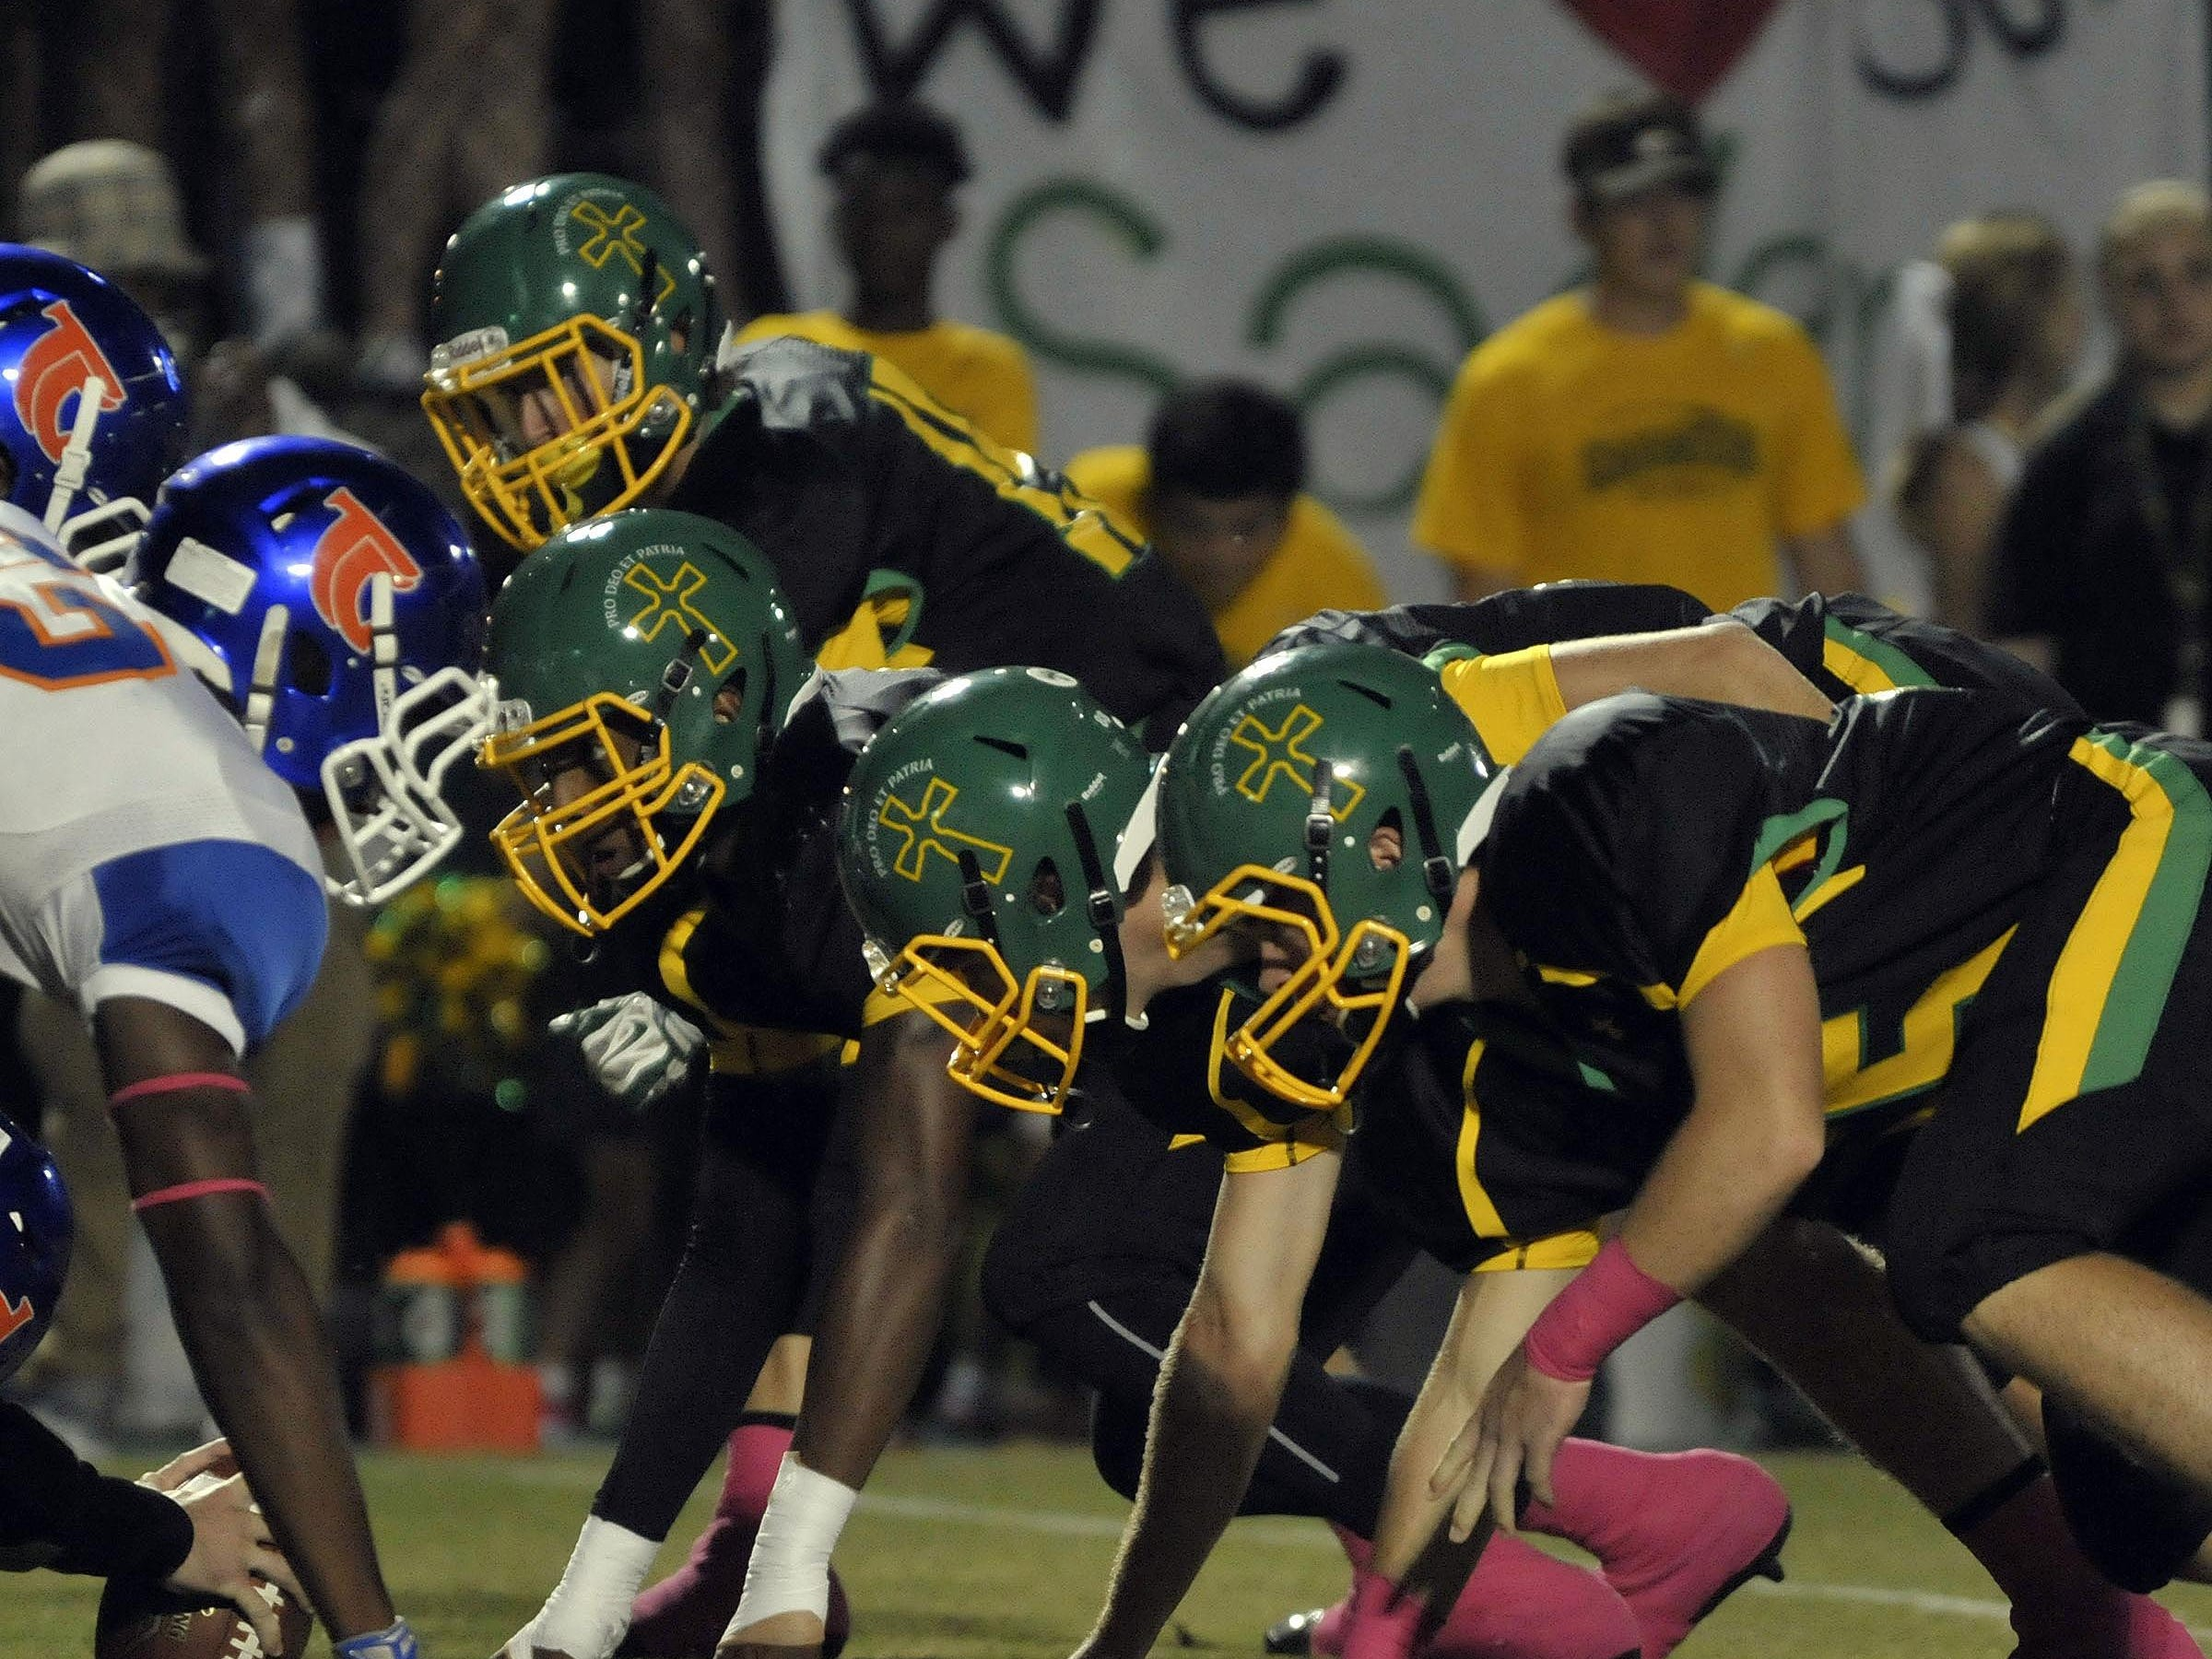 The Pensacola Catholic High Crusaders were wearing a new helmet design Friday night for their game against the Taylor County High Bulldogs.